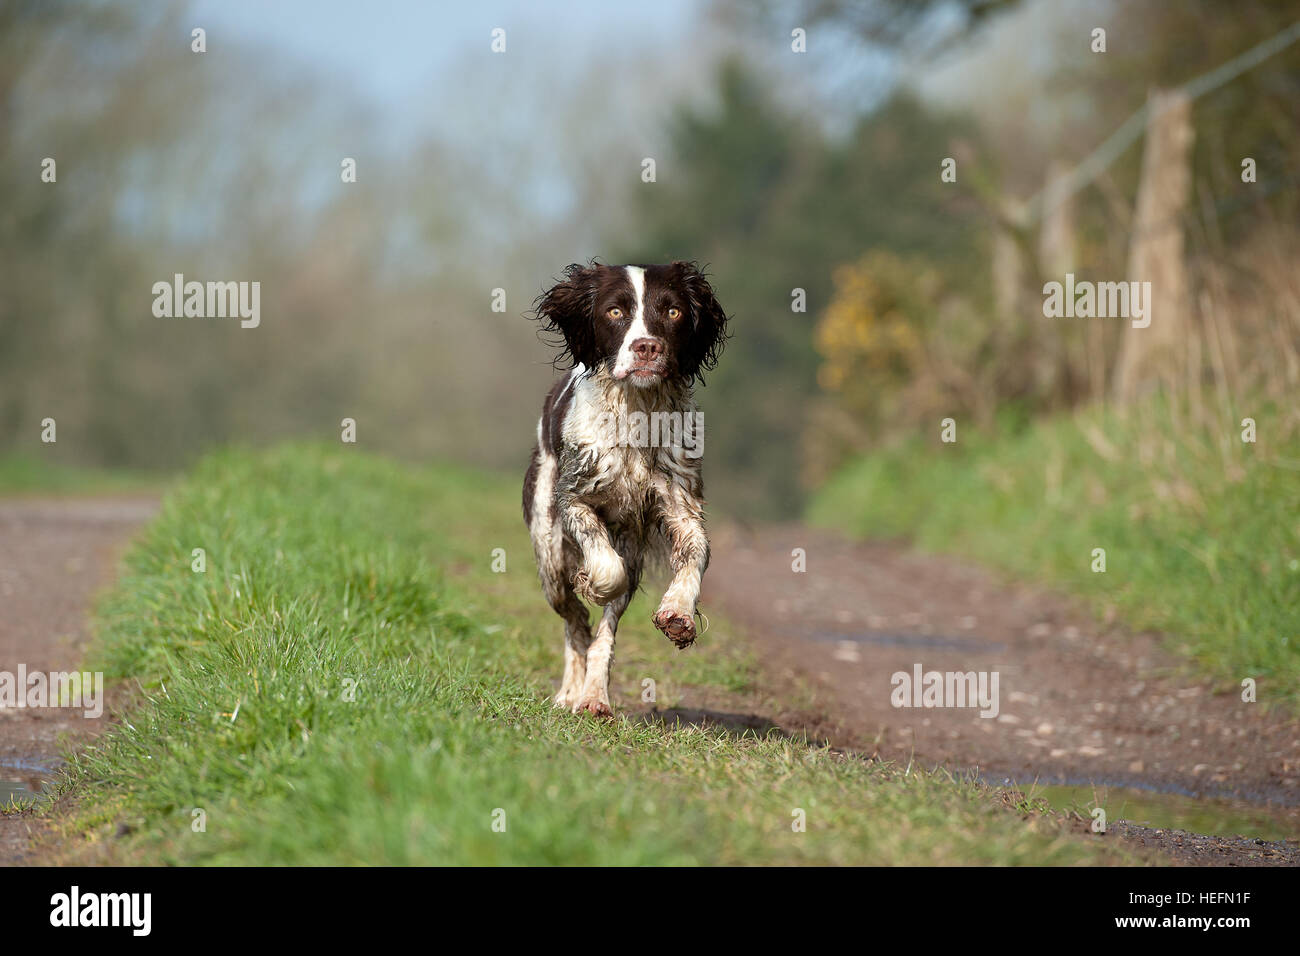 Springer spaniel running toward the camera whilst in the countryside. - Stock Image